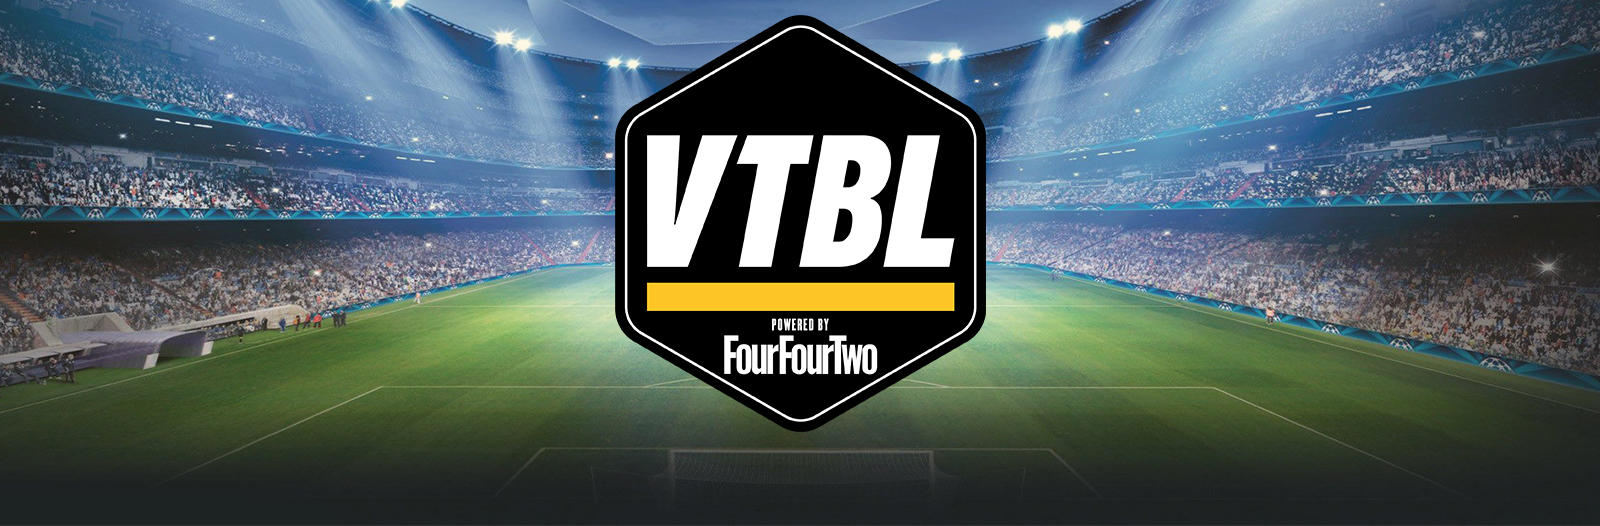 VTBL powered by FourFourTwo abonnementen